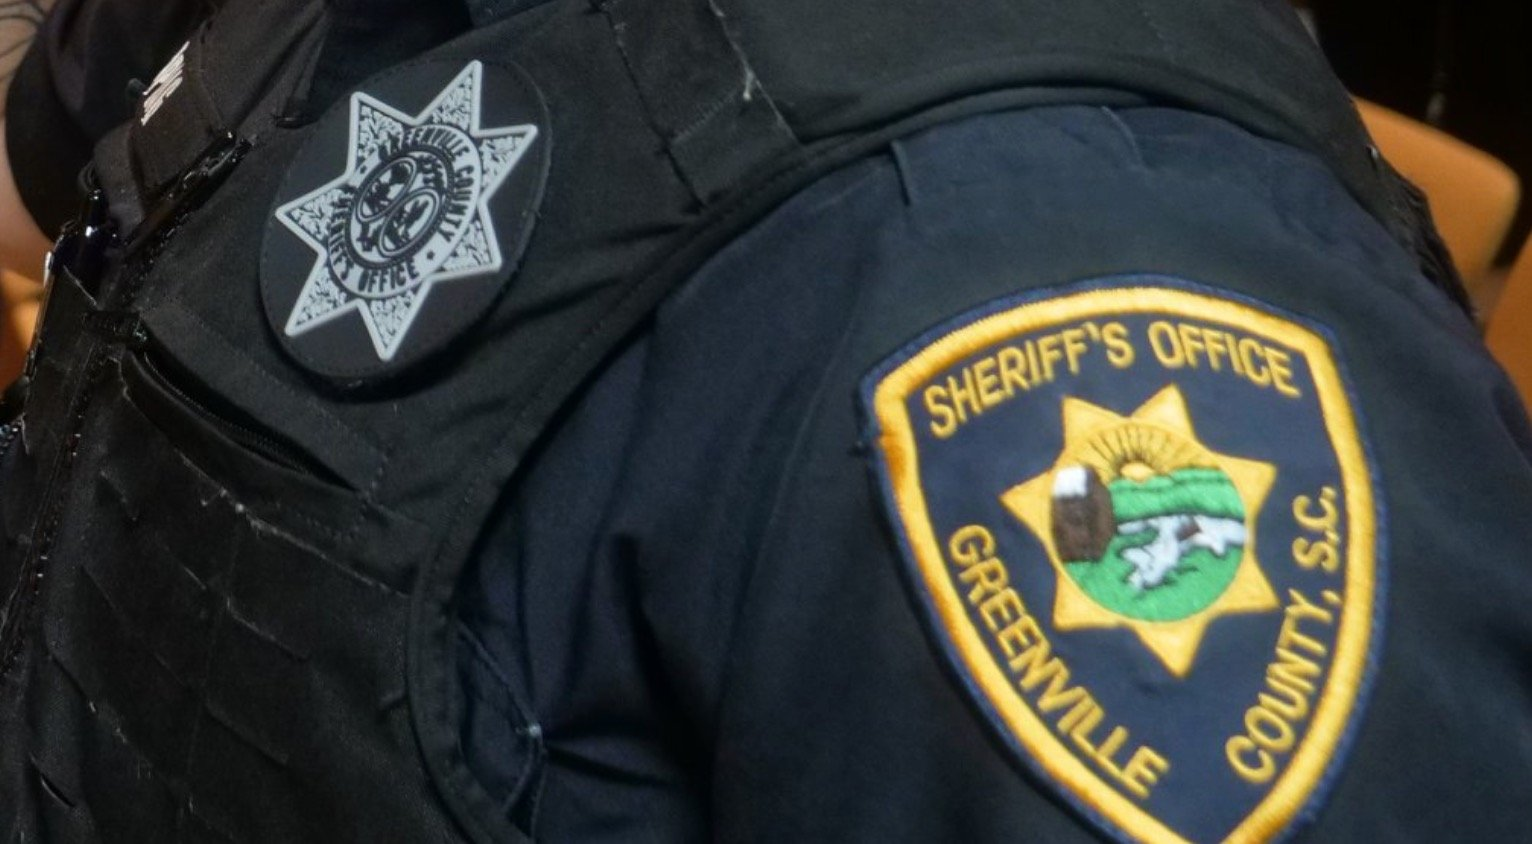 FITSNews – Thornblade Saga: Internal Affairs Investigation At Greenville County Sheriff's Office